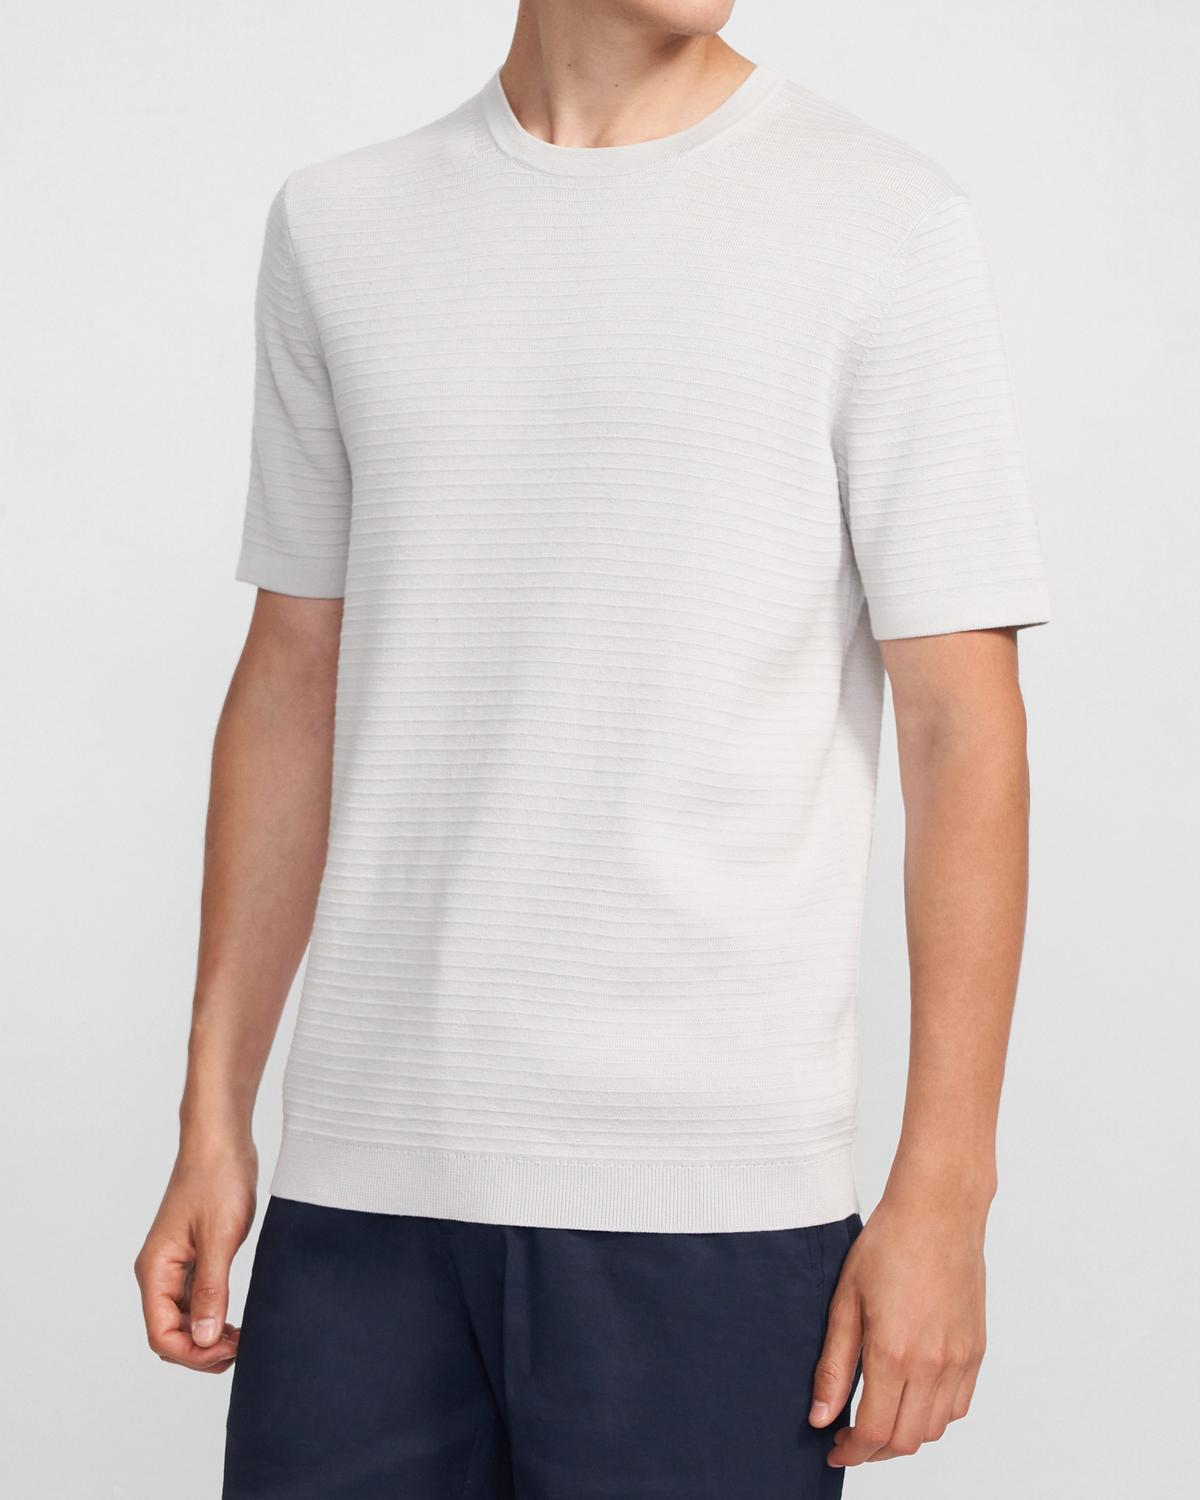 Gades Tee in Piqué Cotton